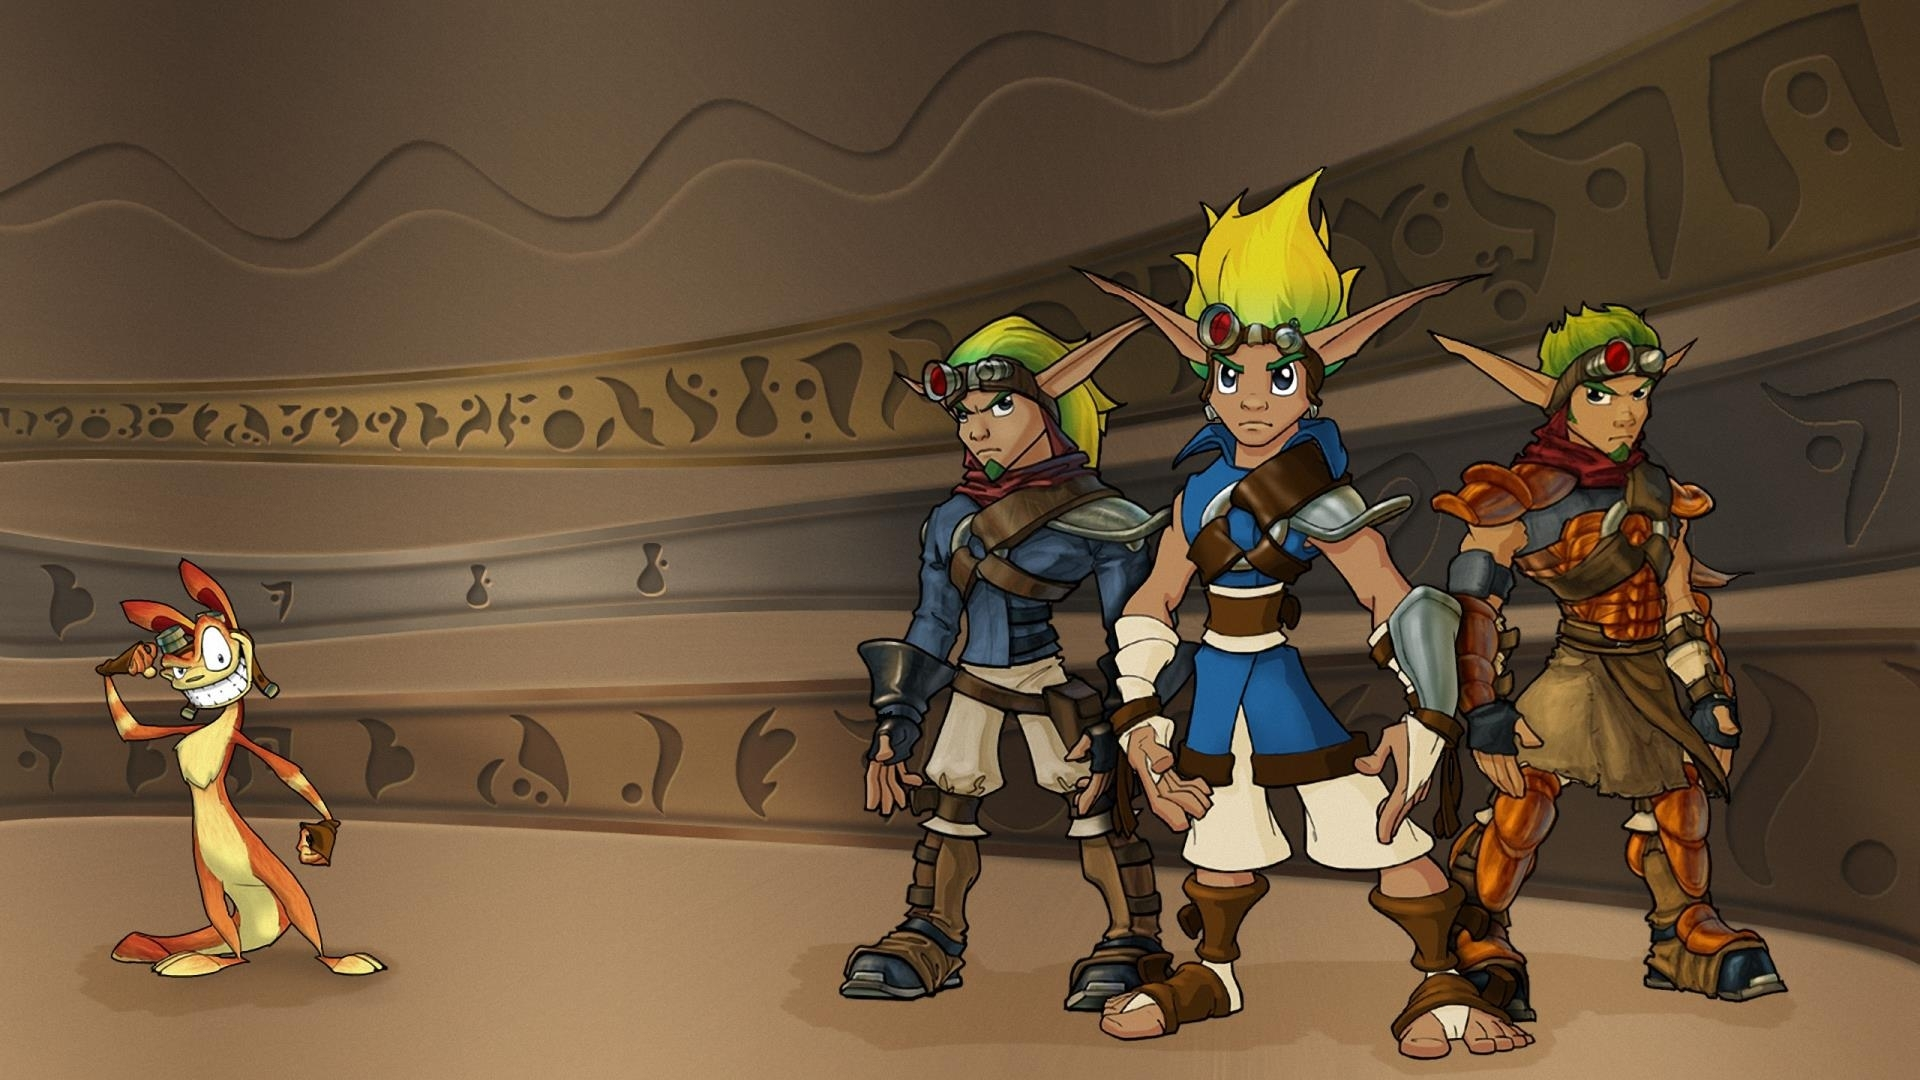 best jak and daxter pictures - media file | pixelstalk